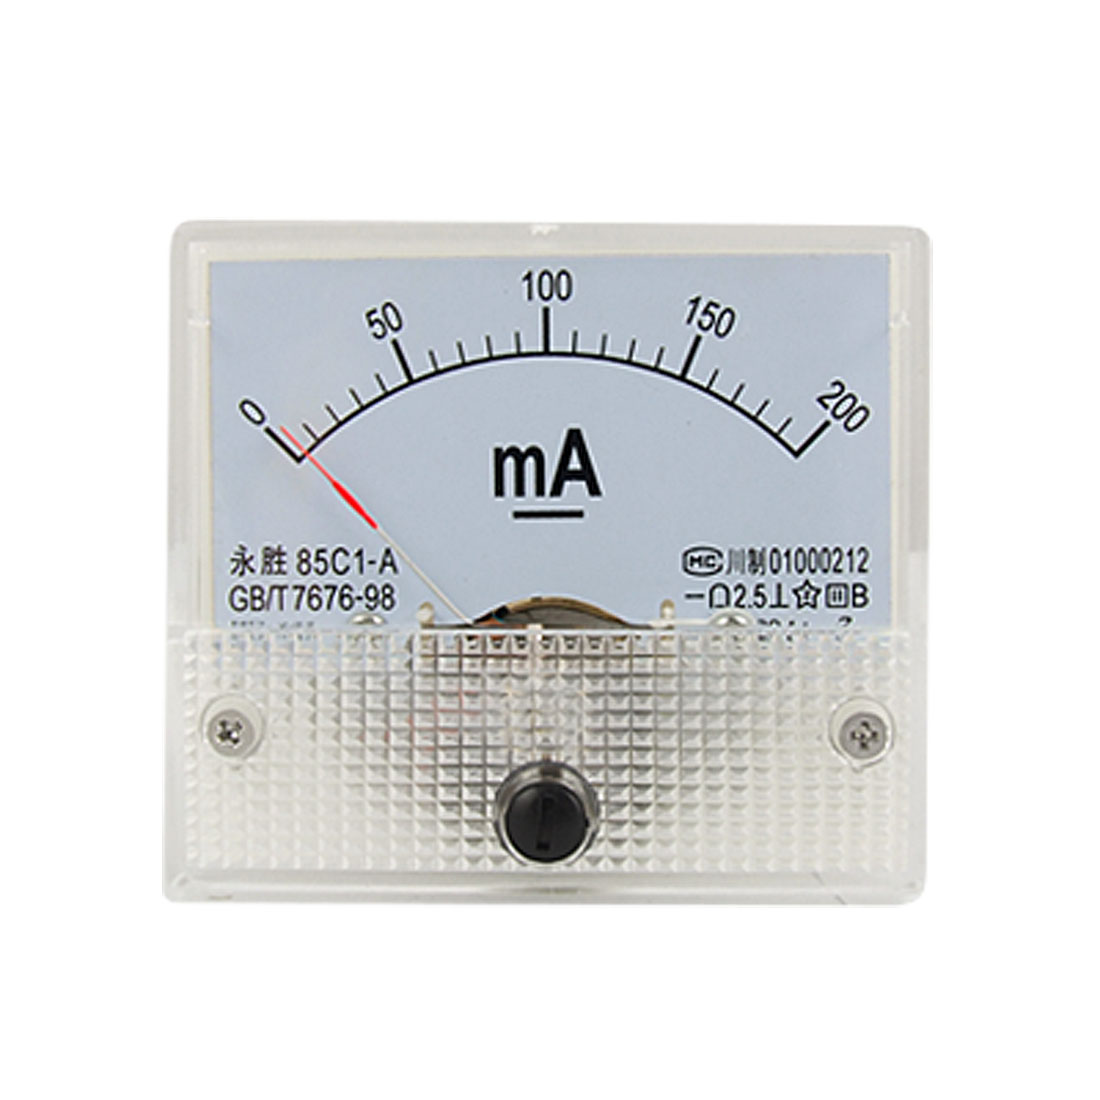 DC 0-200mA Analog Current Panel Meter Ammeter 85C1-A